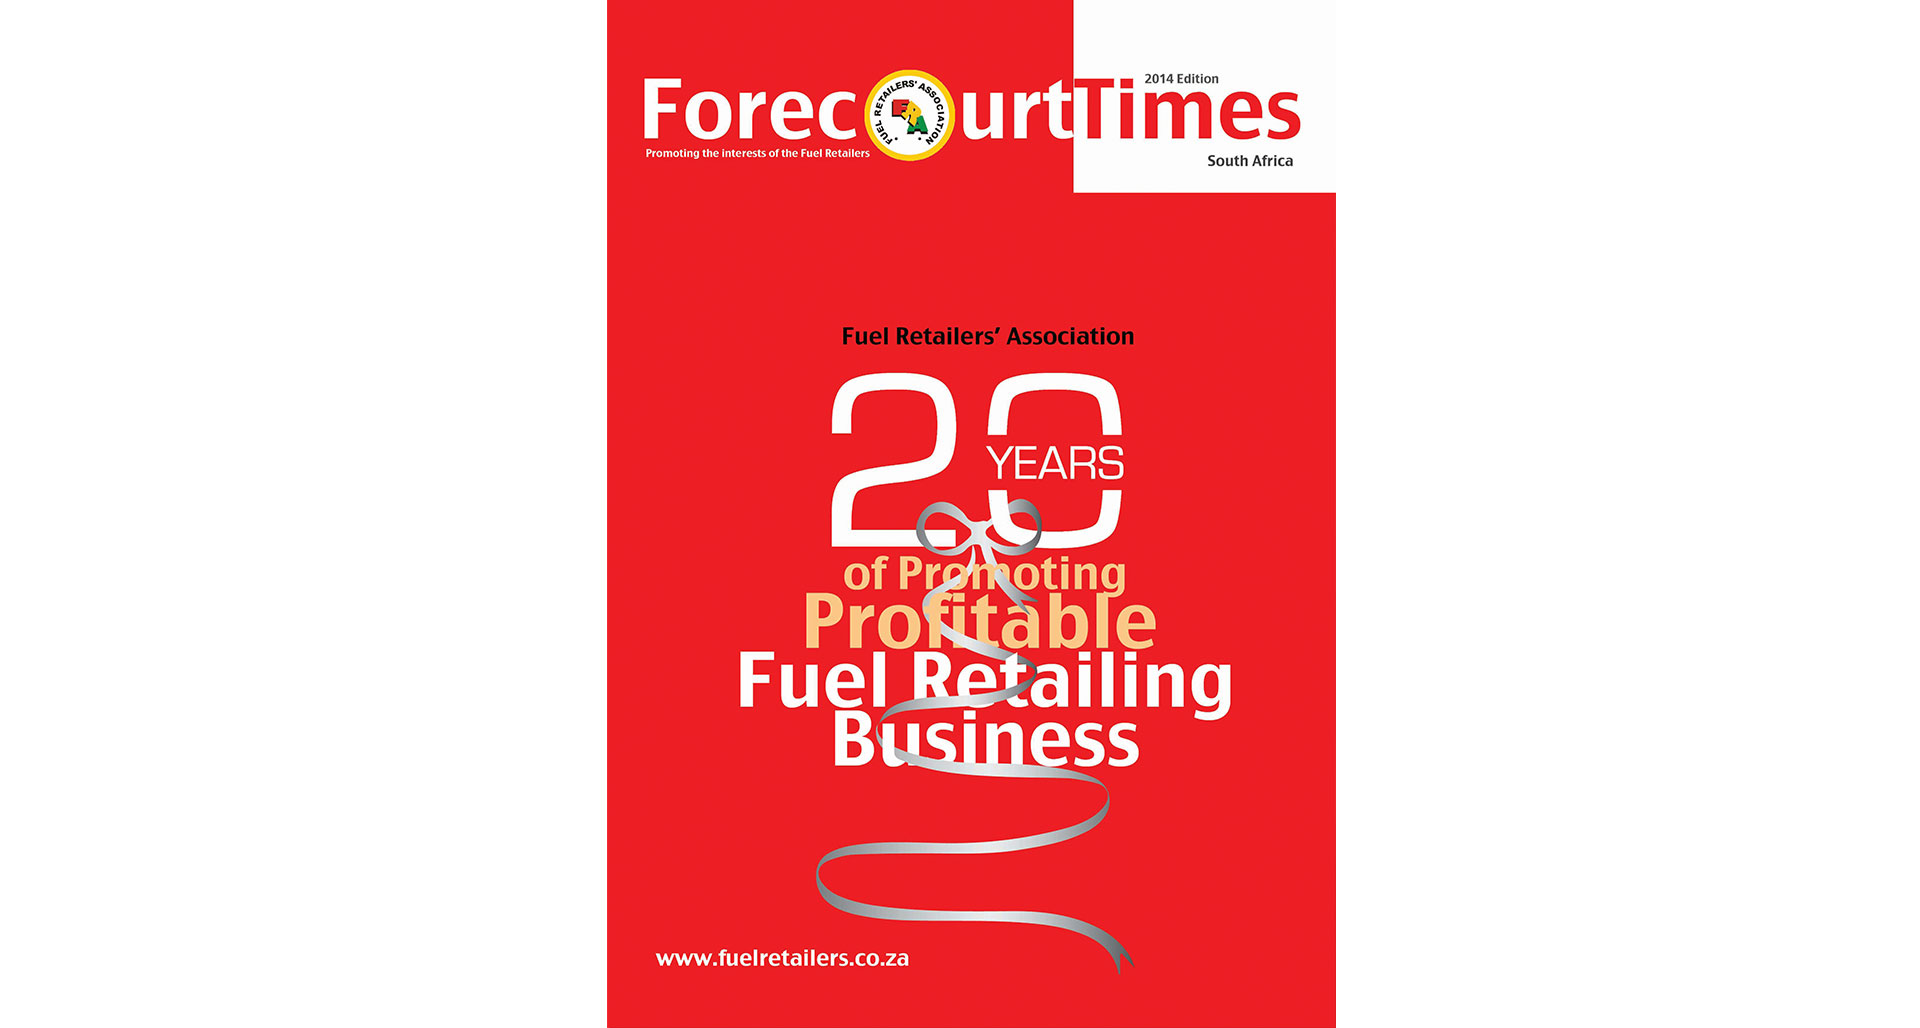 Forecourt Times 2014 Edition